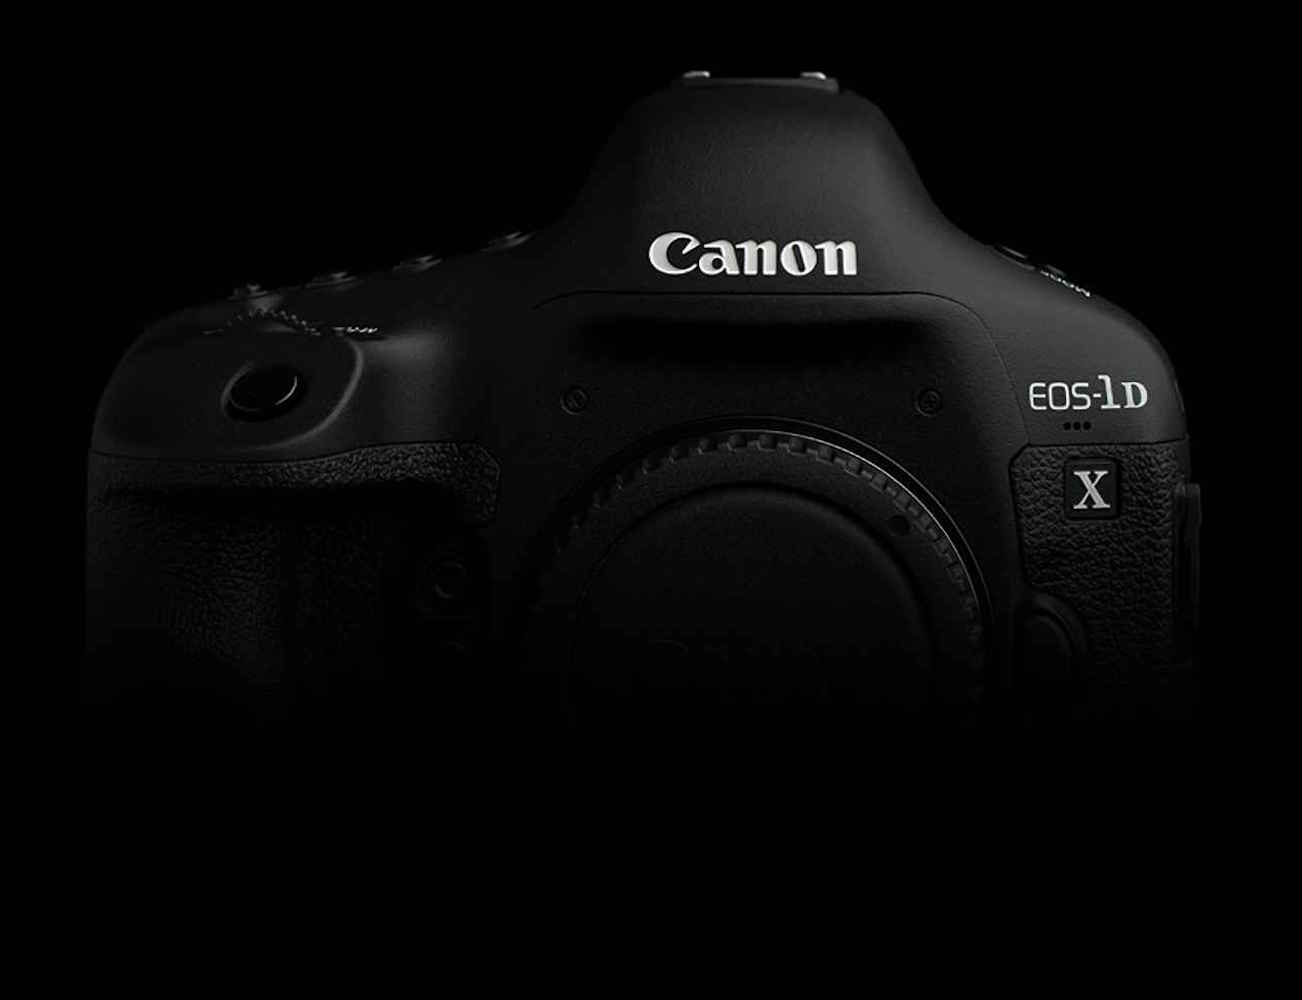 canon-eos-1d-mark-ii-dslr-with-4k-video-02